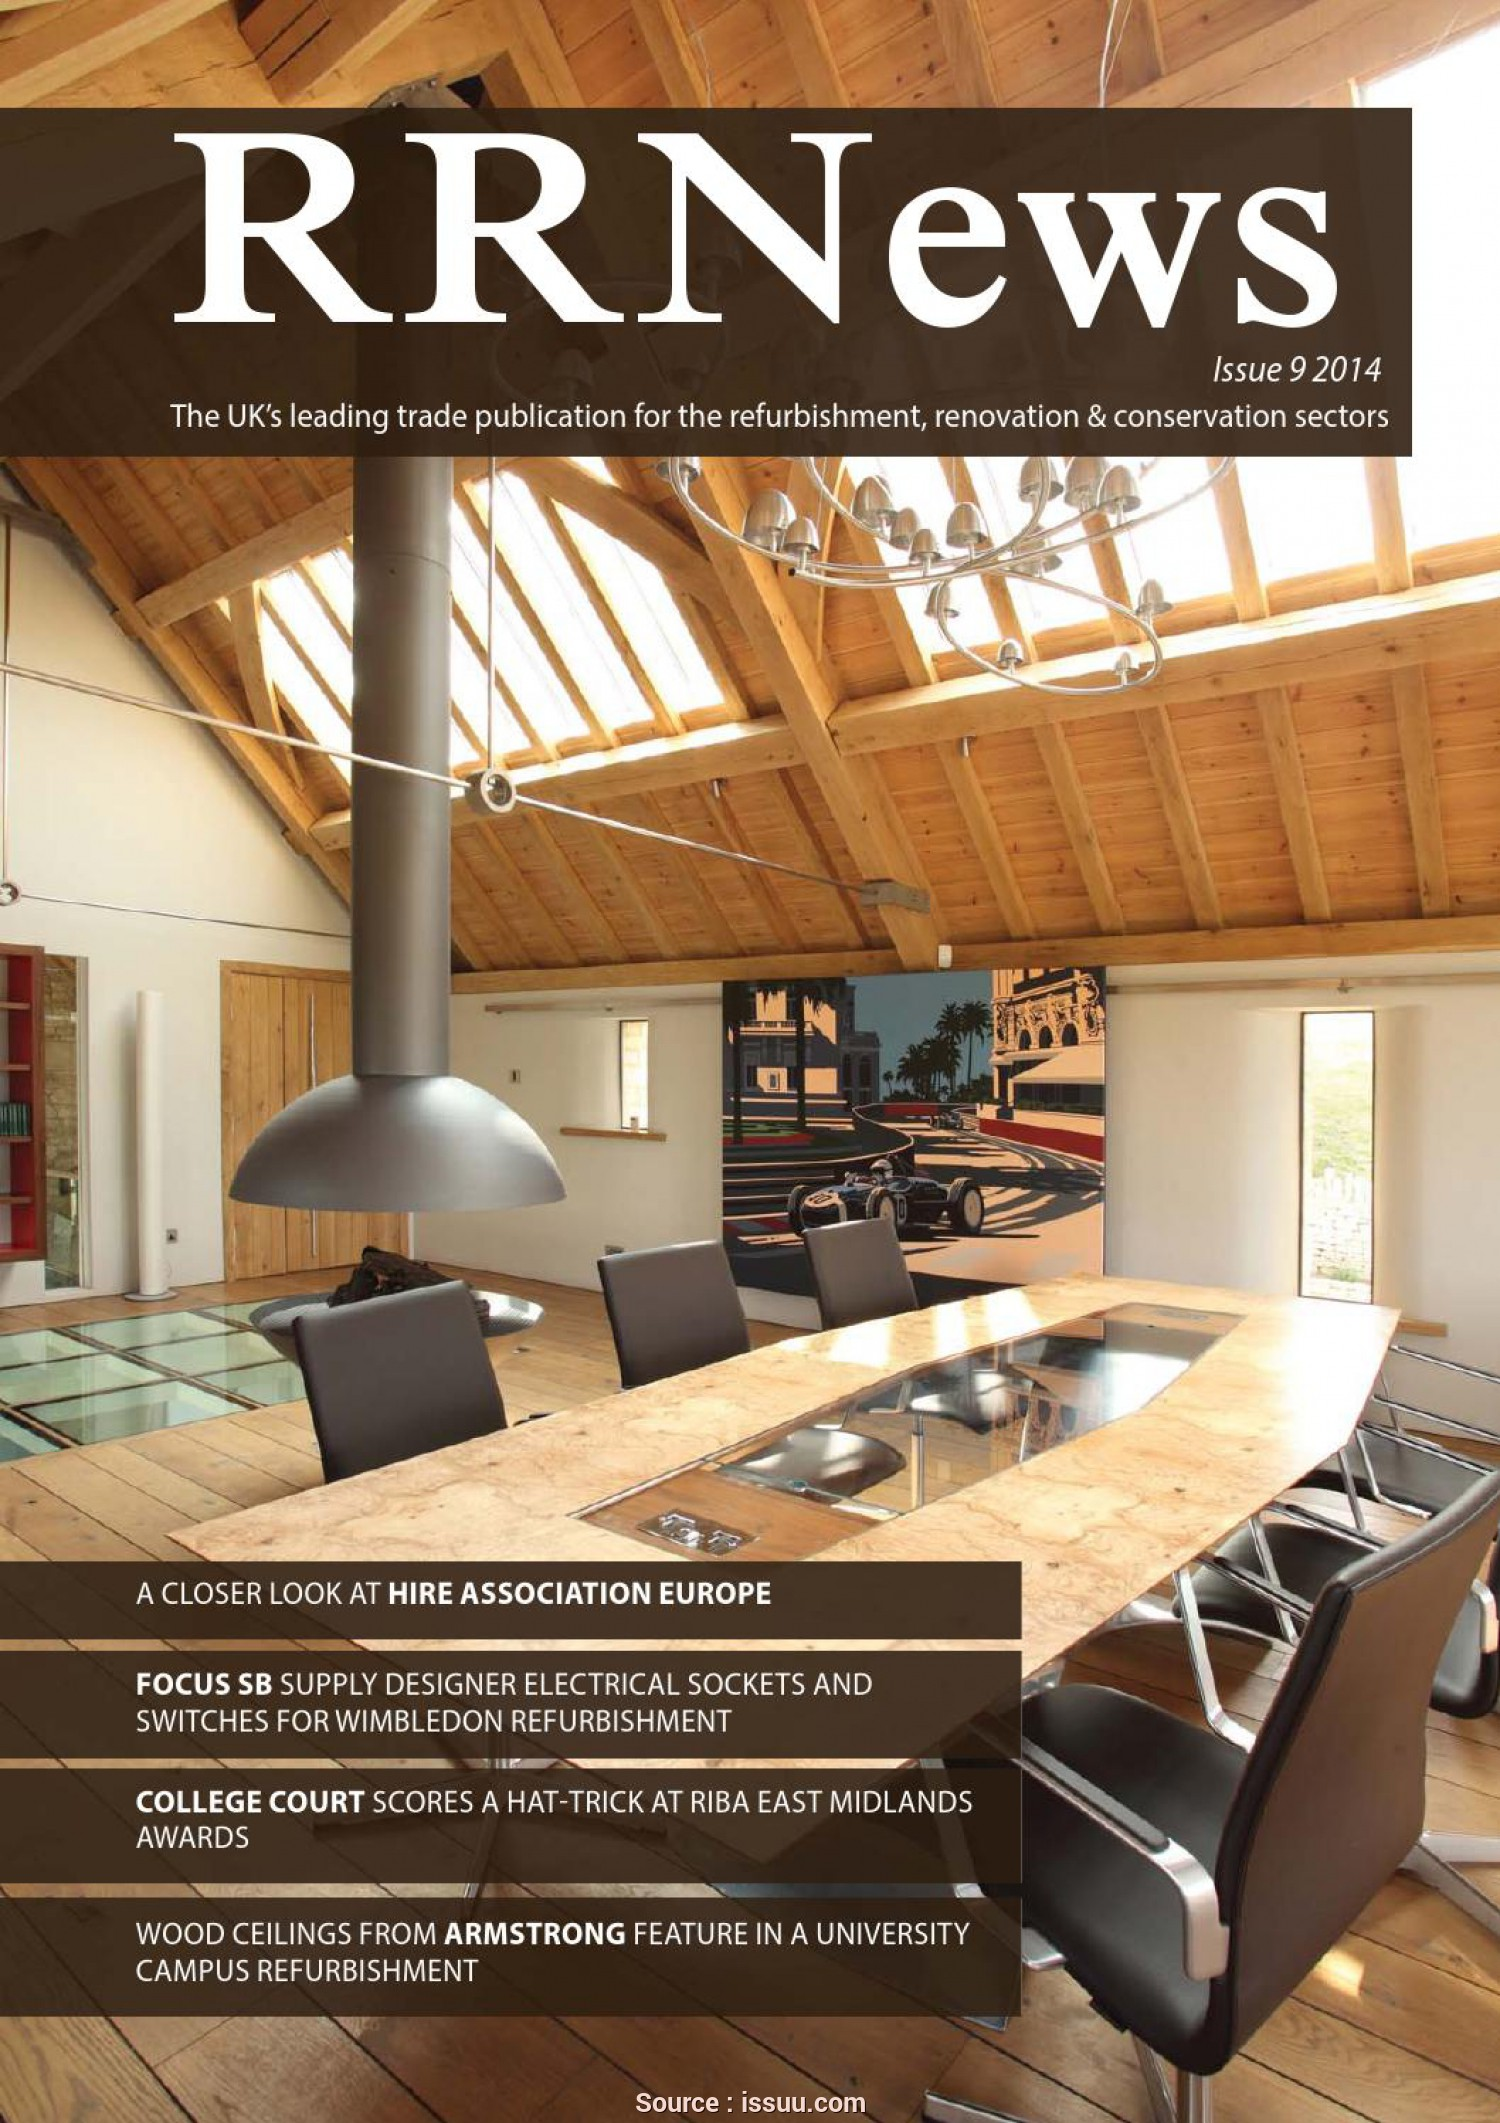 Sb Salotti Apollo, Favoloso Refurb Renovation News, Issue, 2014